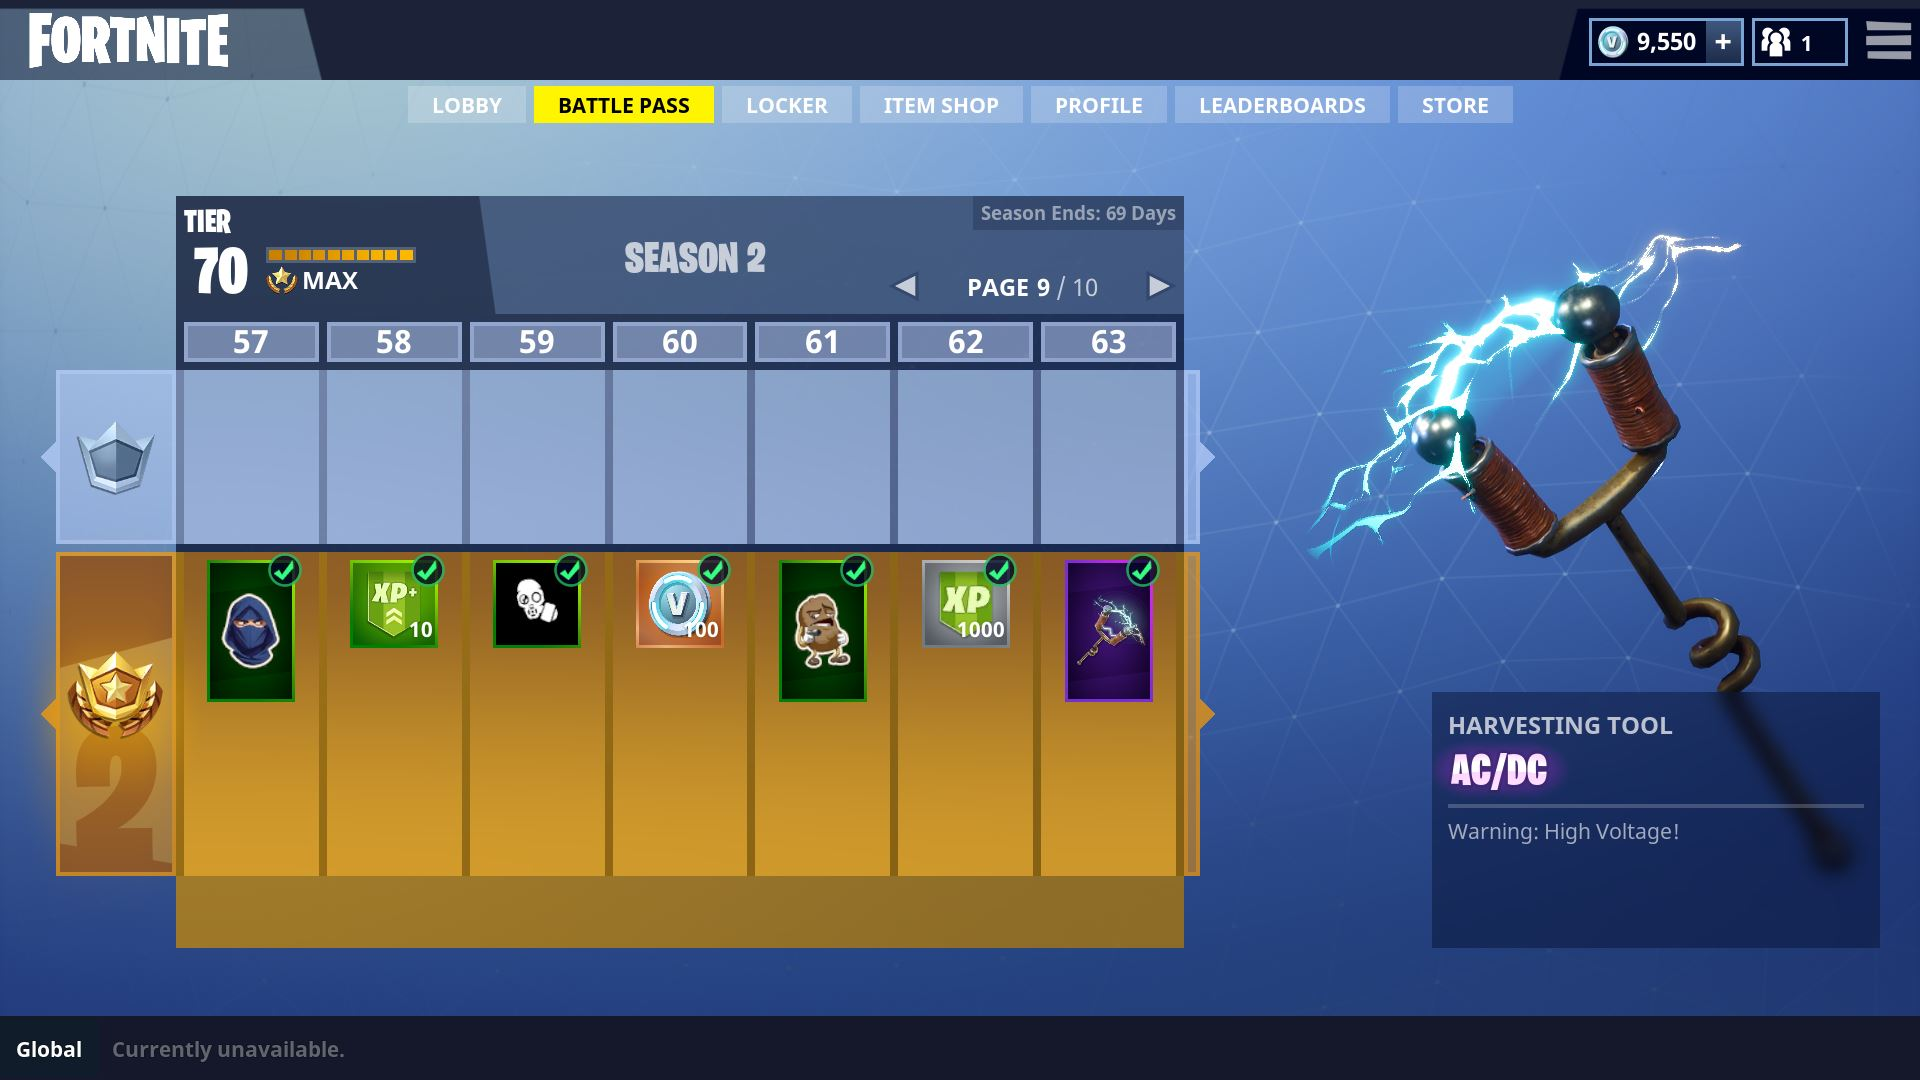 Welcome to Season 3: Battle Pass Breakdown